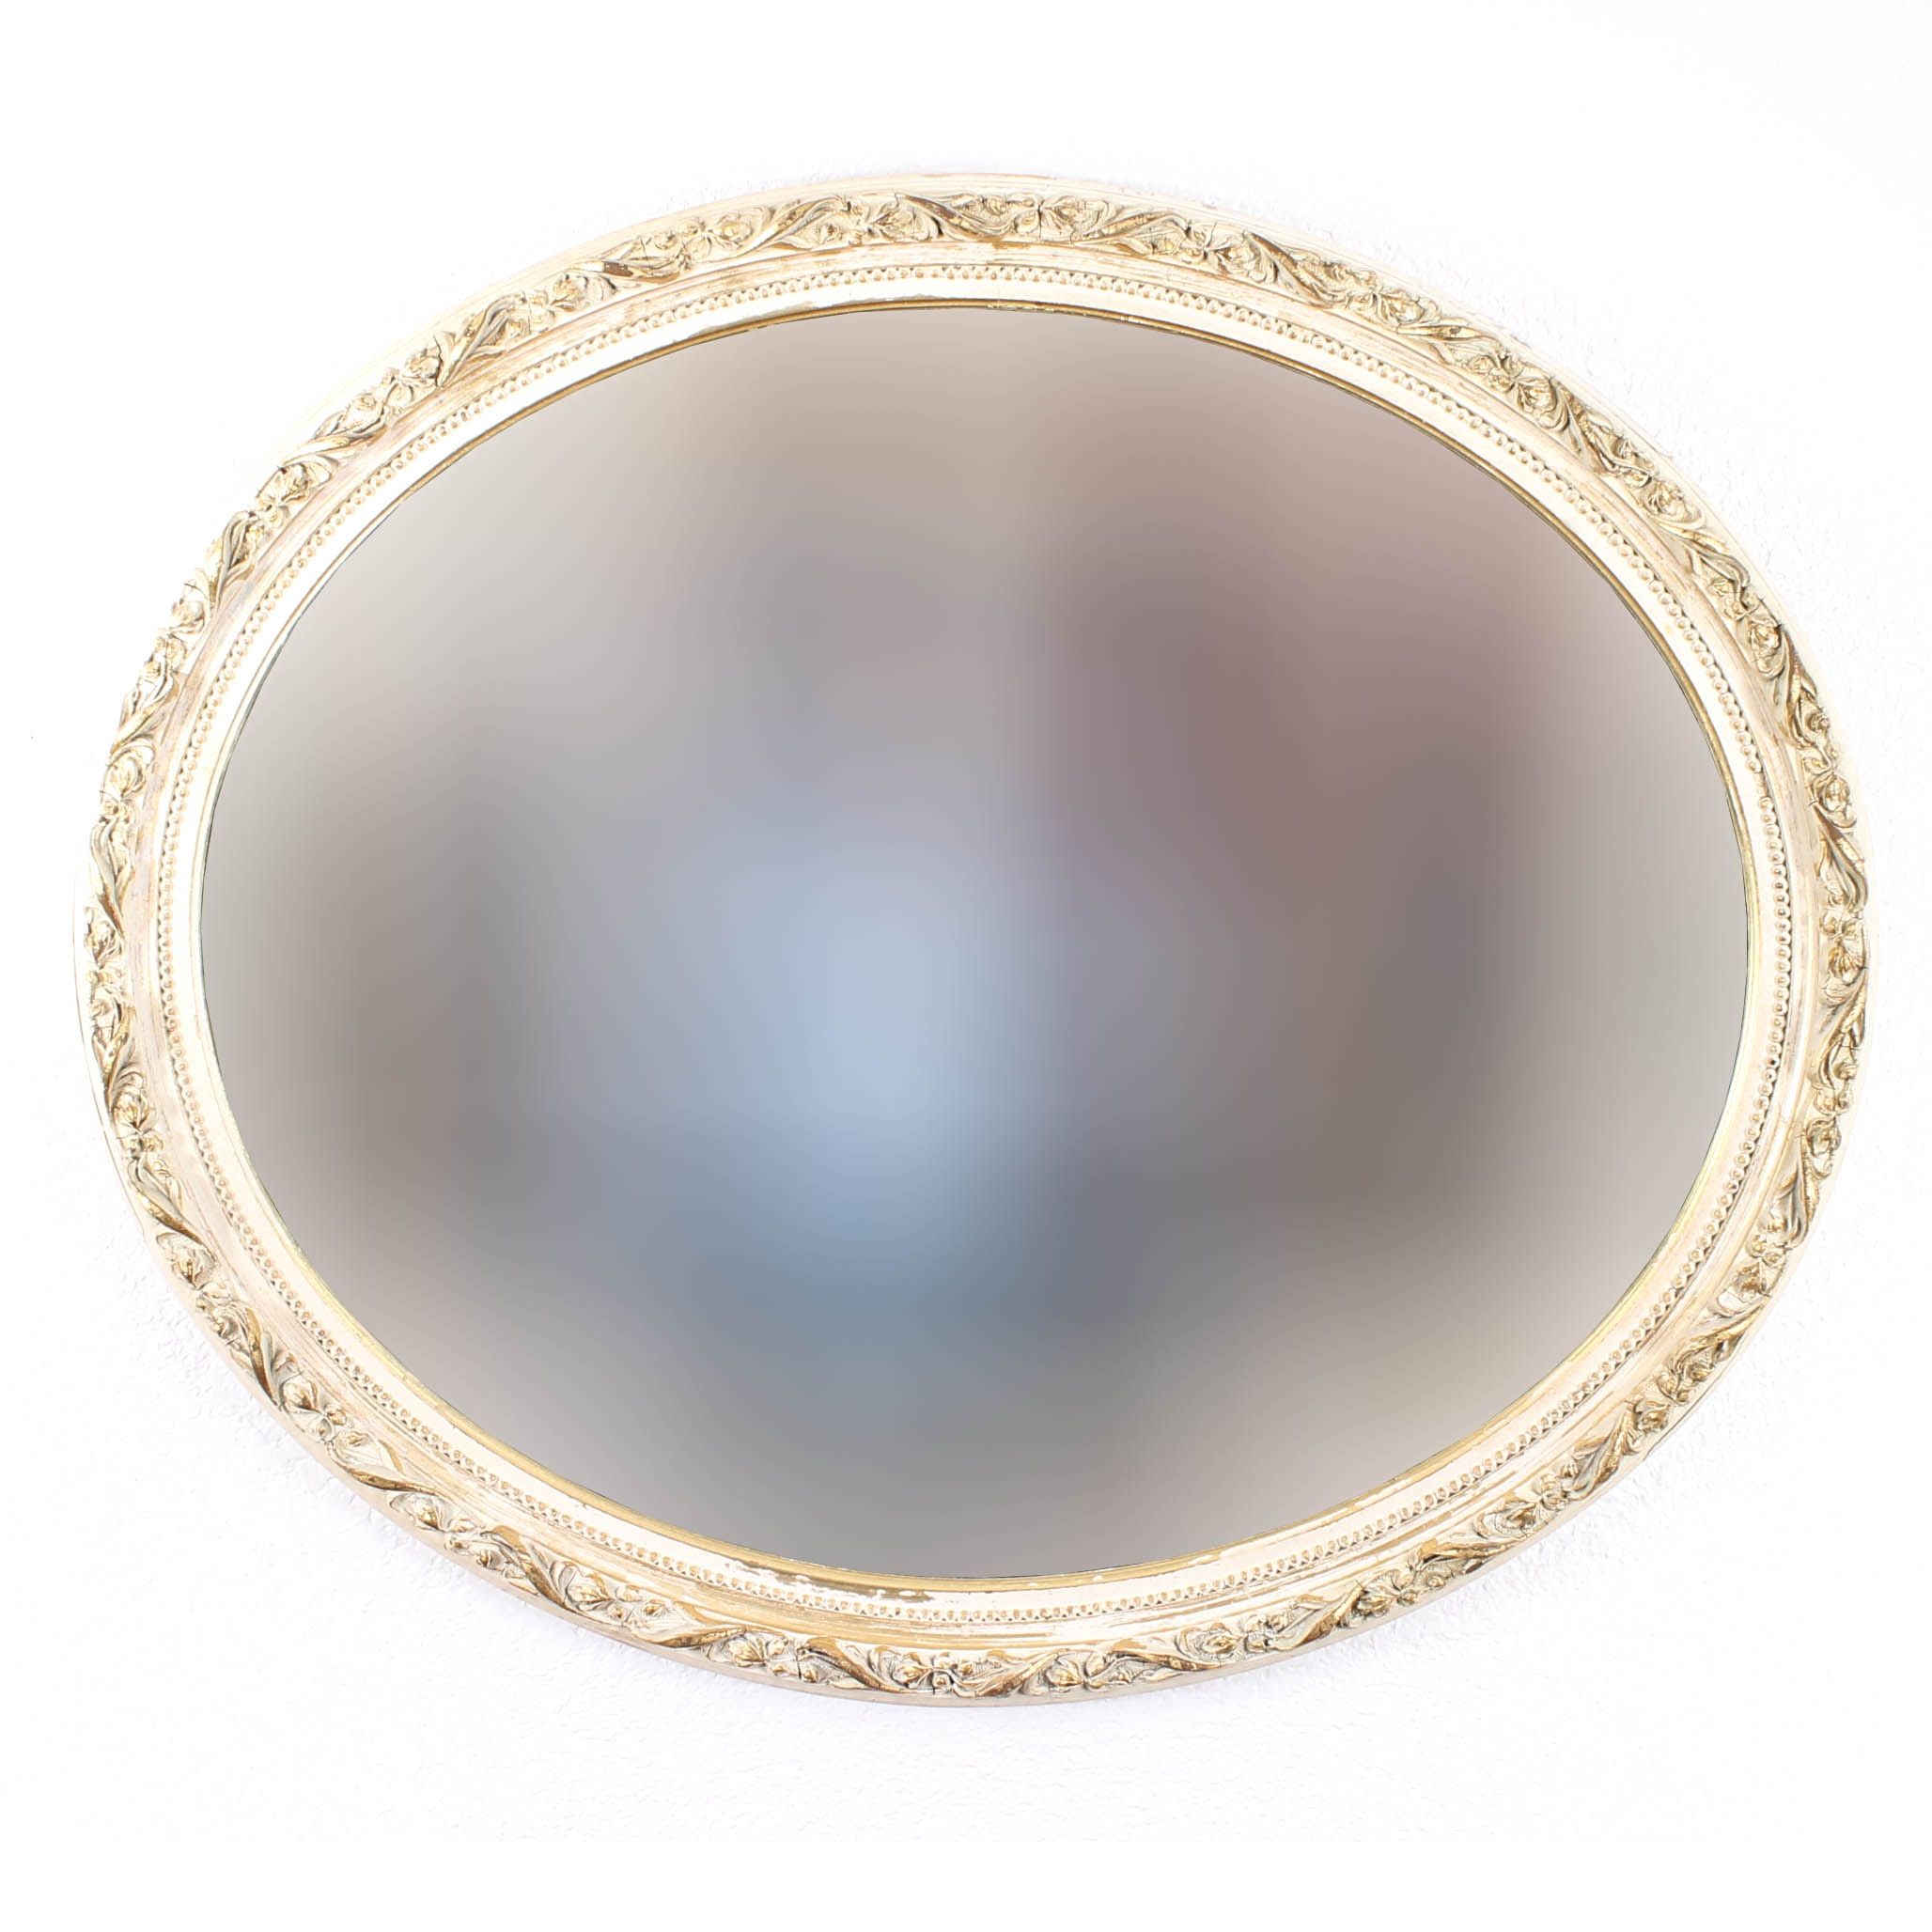 Vintage Oval Wooden Wall Mirror